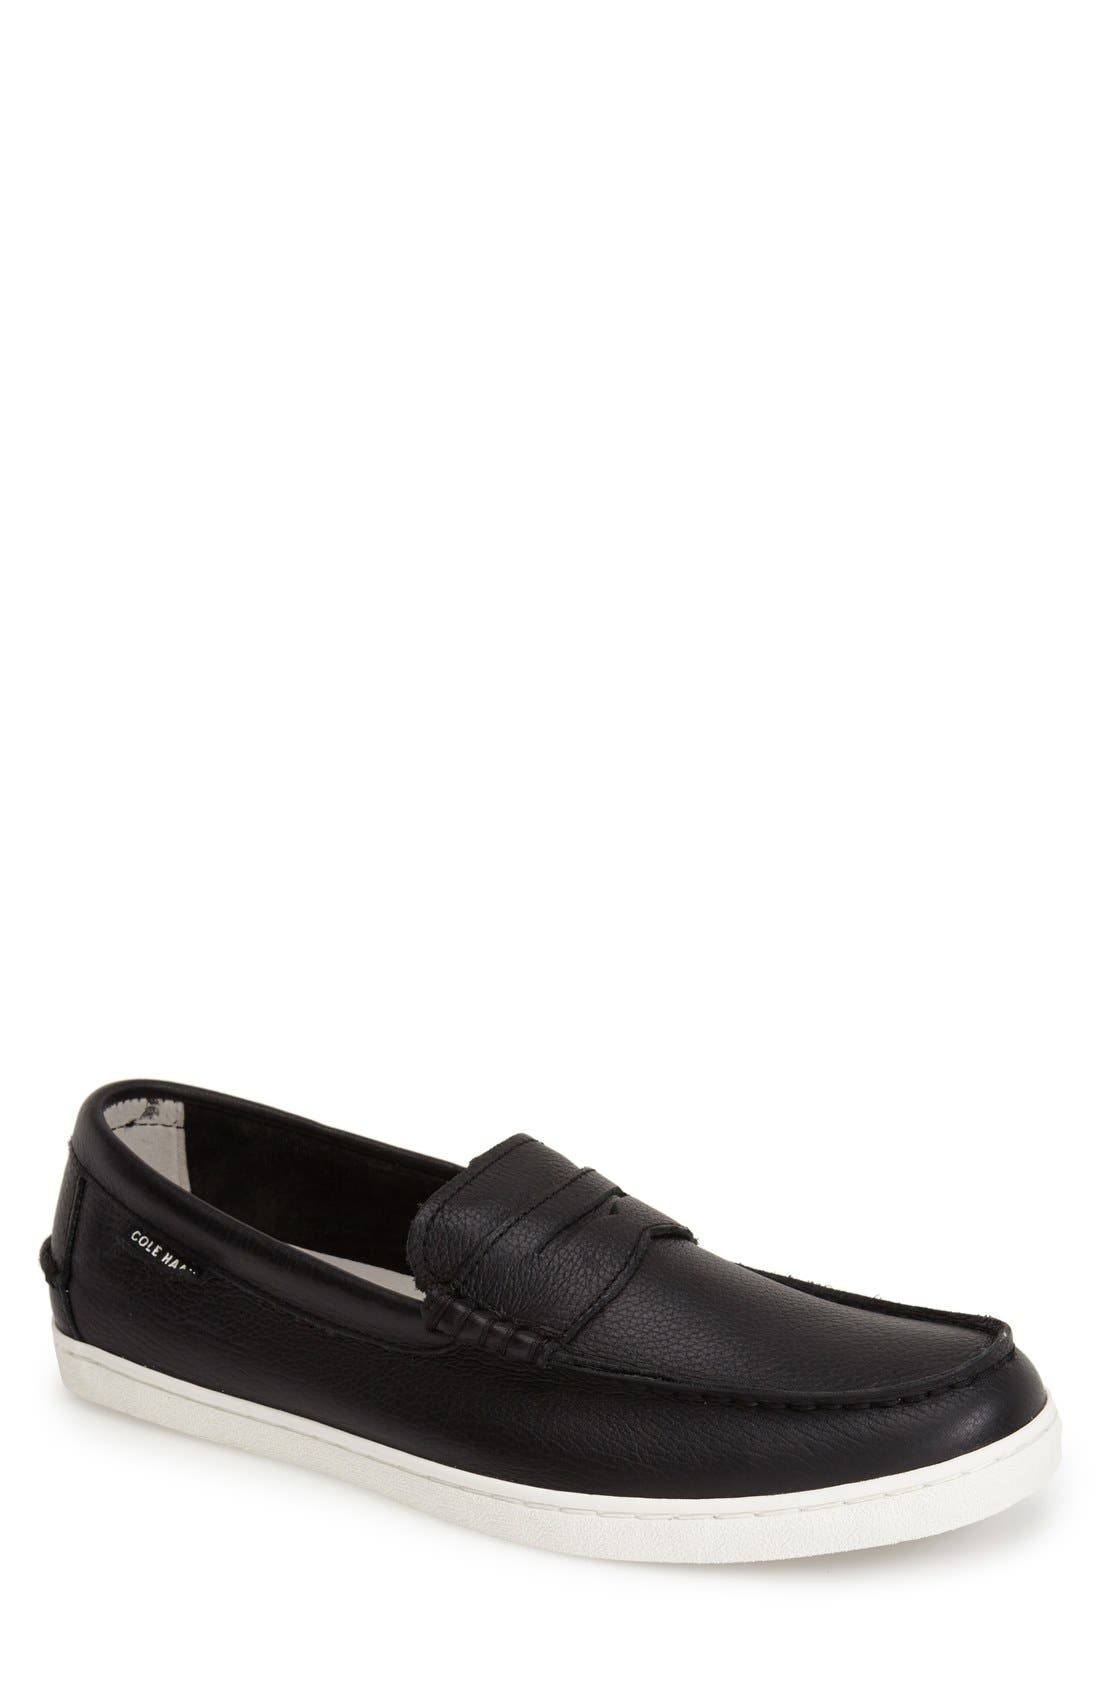 'Pinch' Penny Loafer,                             Main thumbnail 1, color,                             001